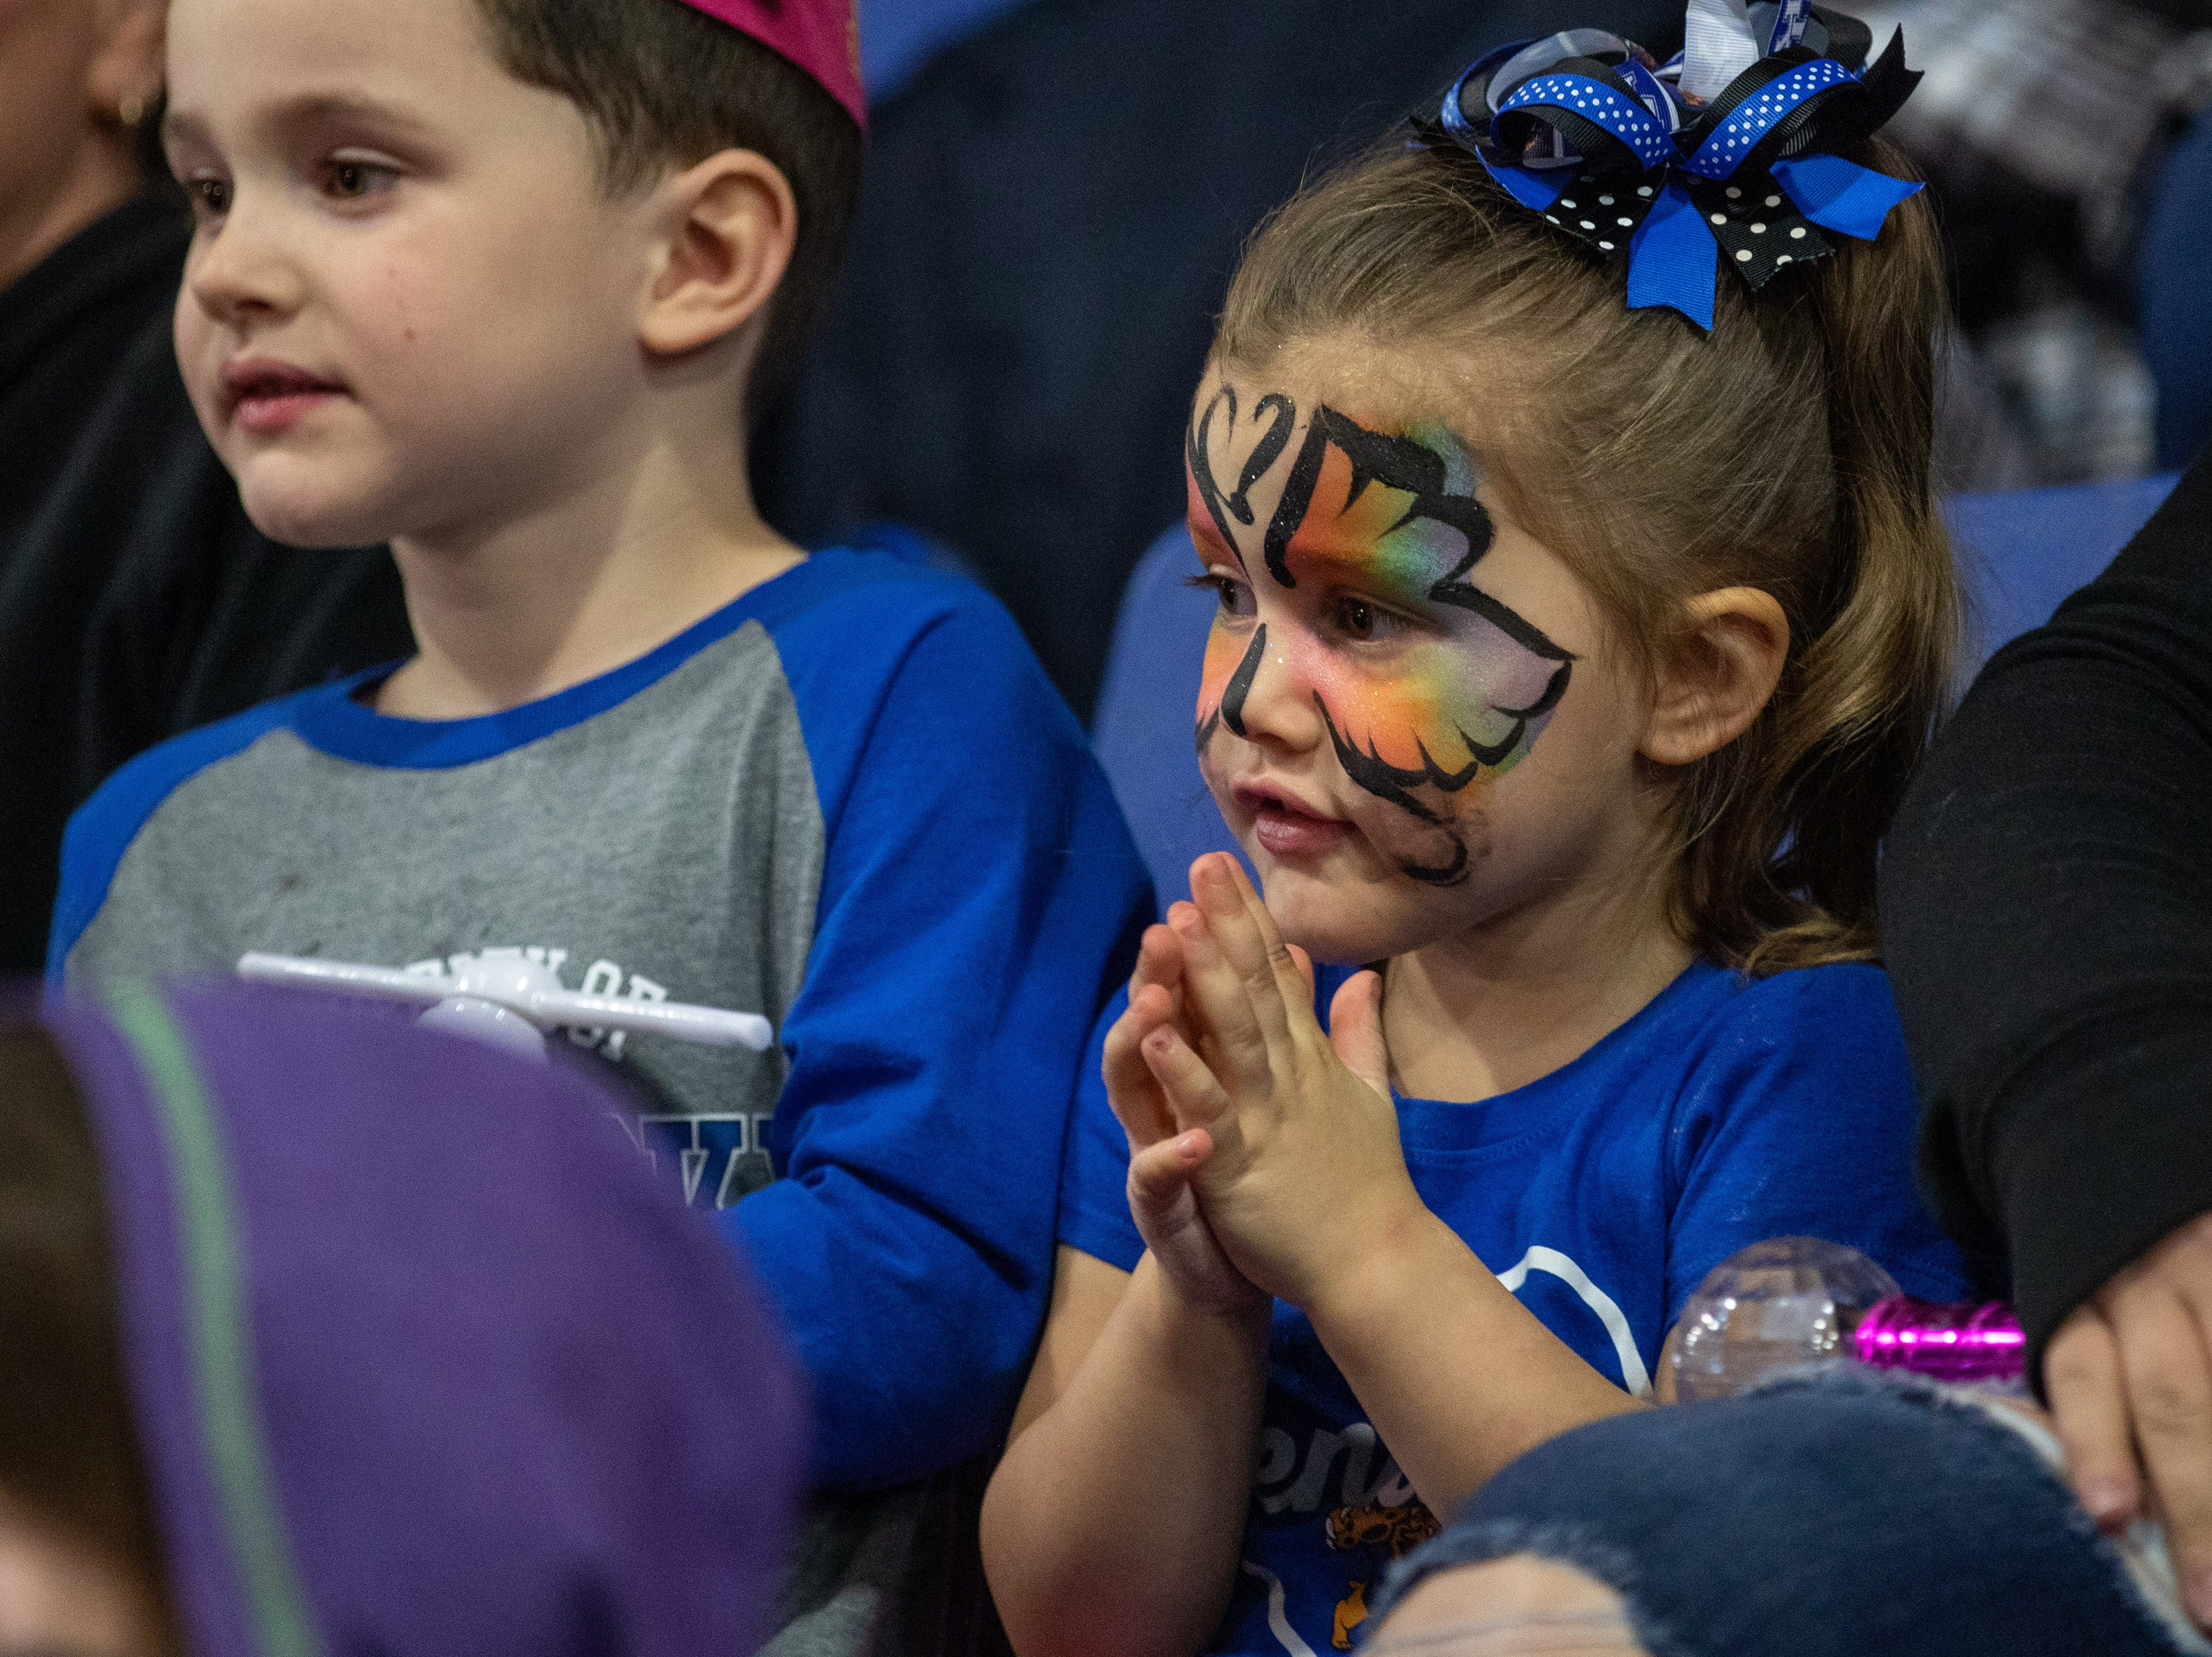 Rainbow colors and a butterfly outline, a little girl's face shows anticipation under her pretty paint, Saturday, Feb. 9, 2019 in Louisville Ky.